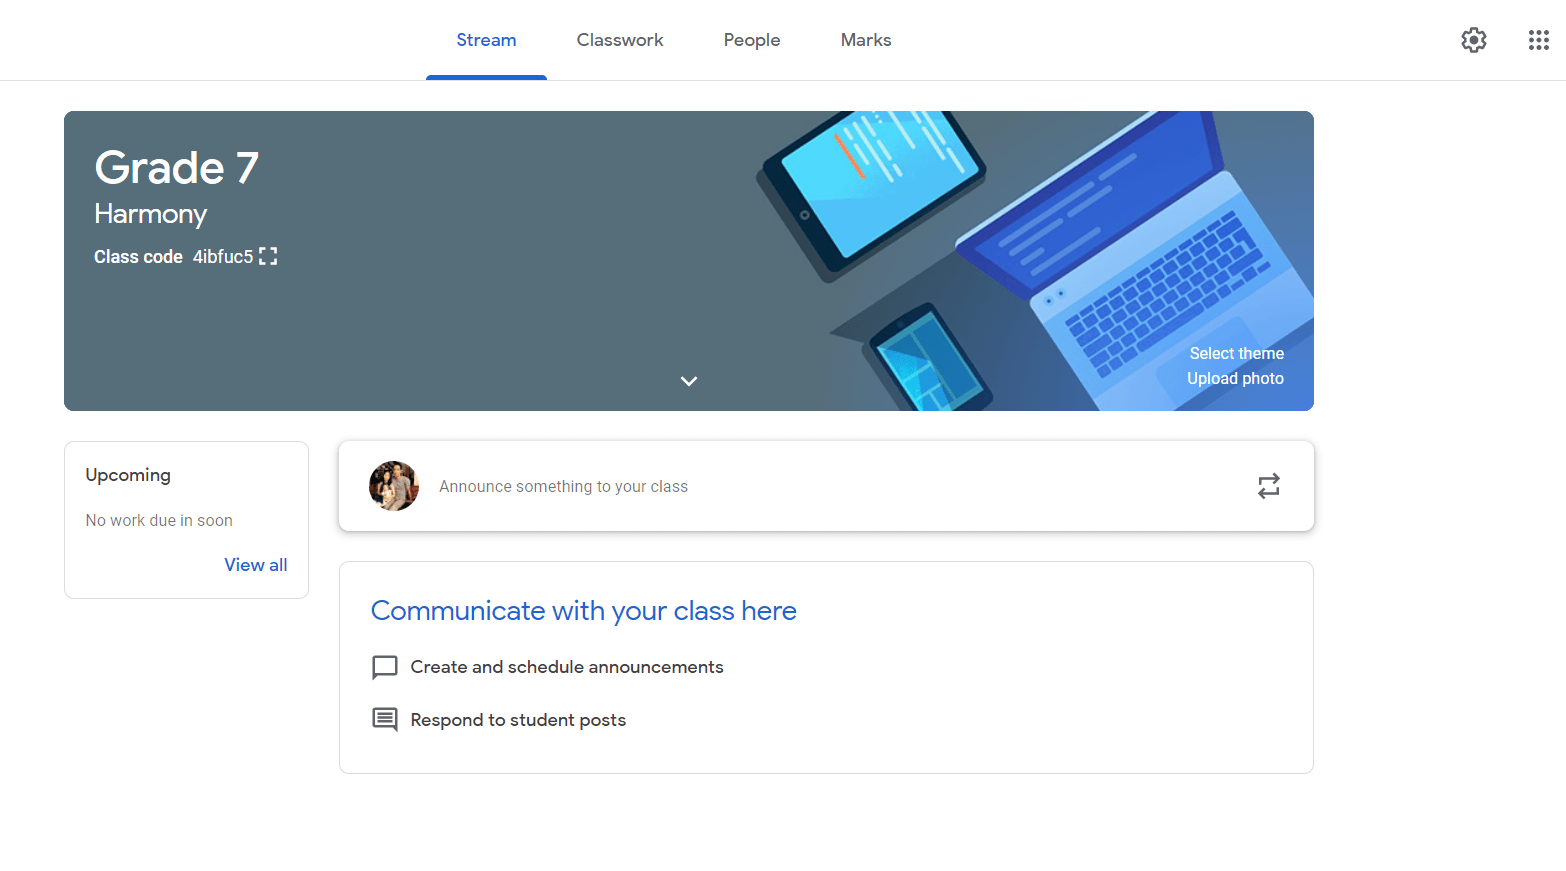 Classroom interface when you start remote learning with Google Workspace for Education. You can now start assigning tasks to your students, grade their work directly, and create announcements.